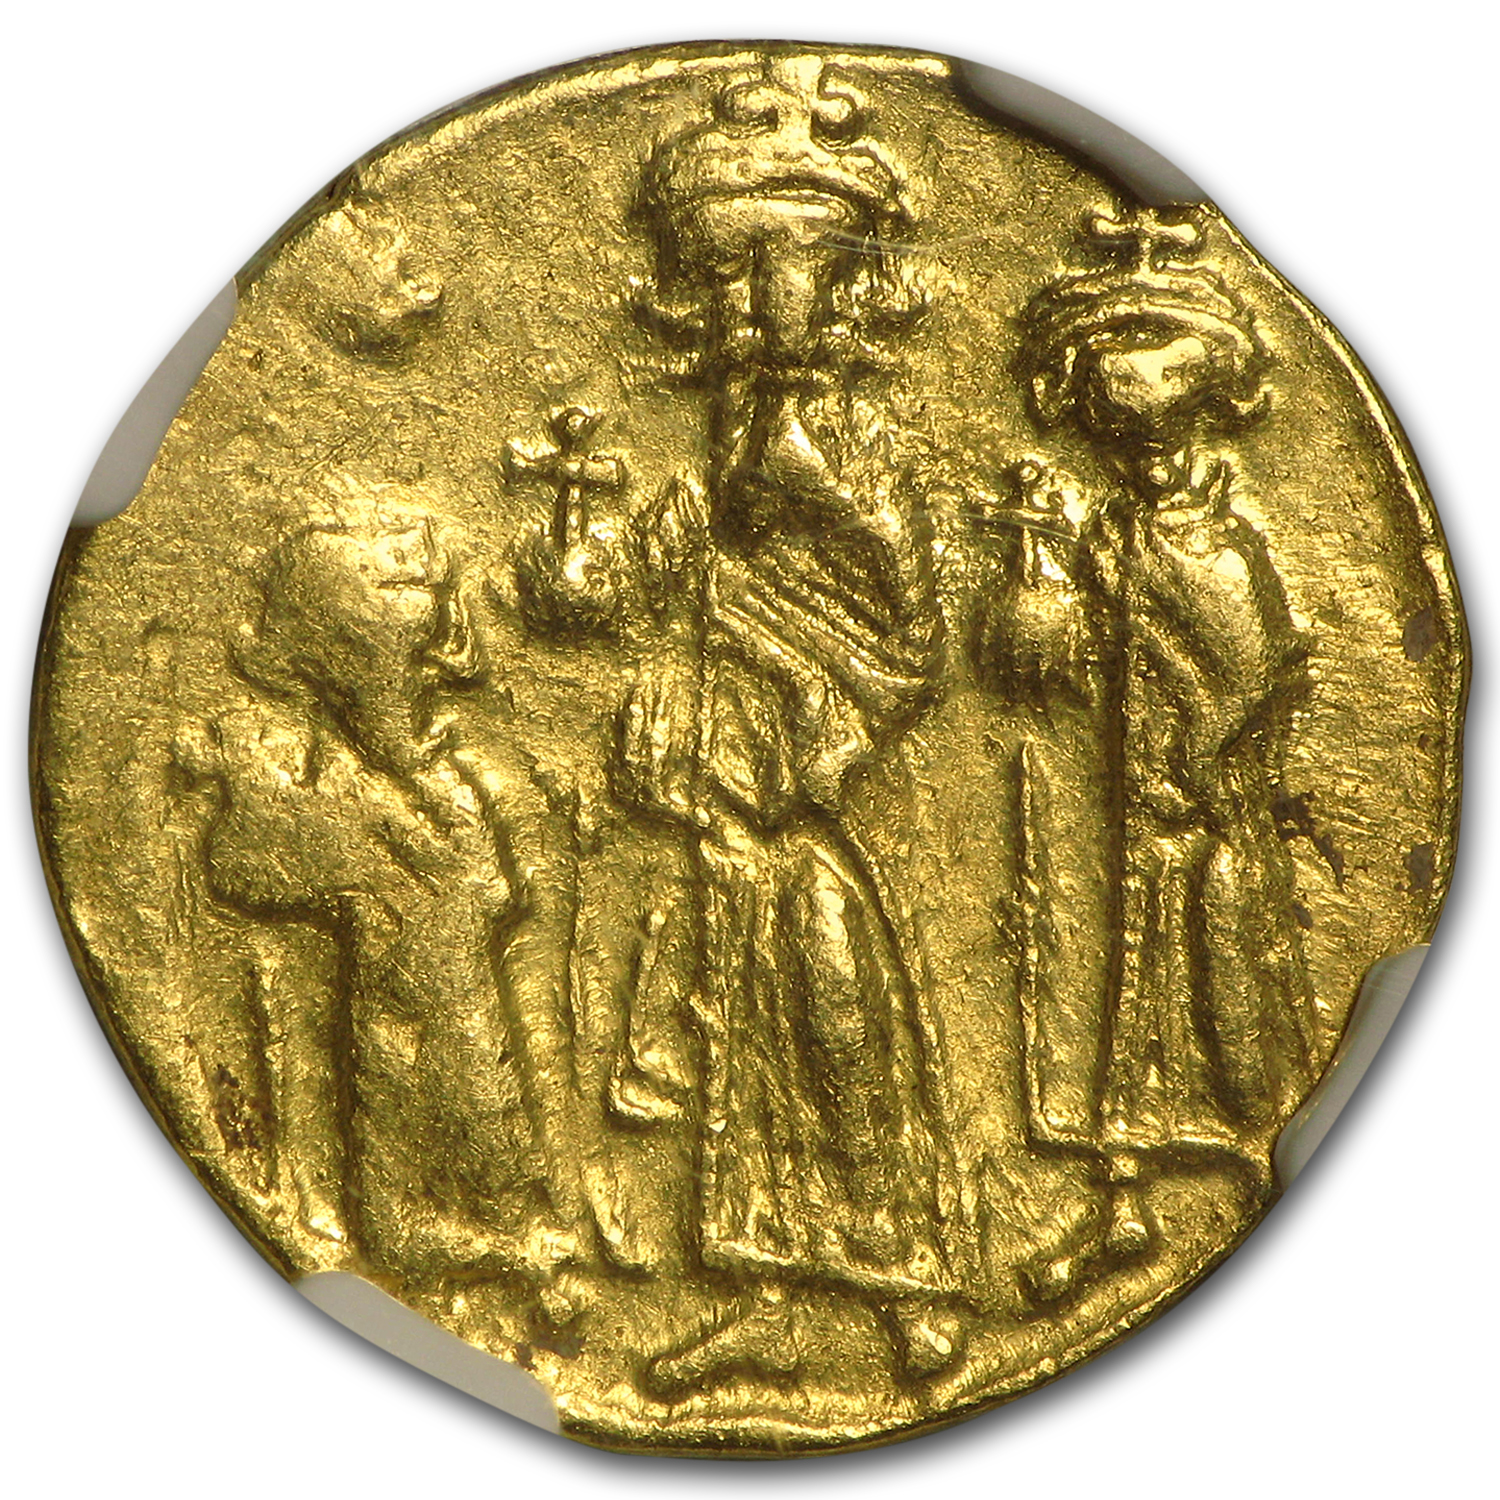 Byzantine Gold Solidus Emperor Heraclius (610-641 AD) XF NGC